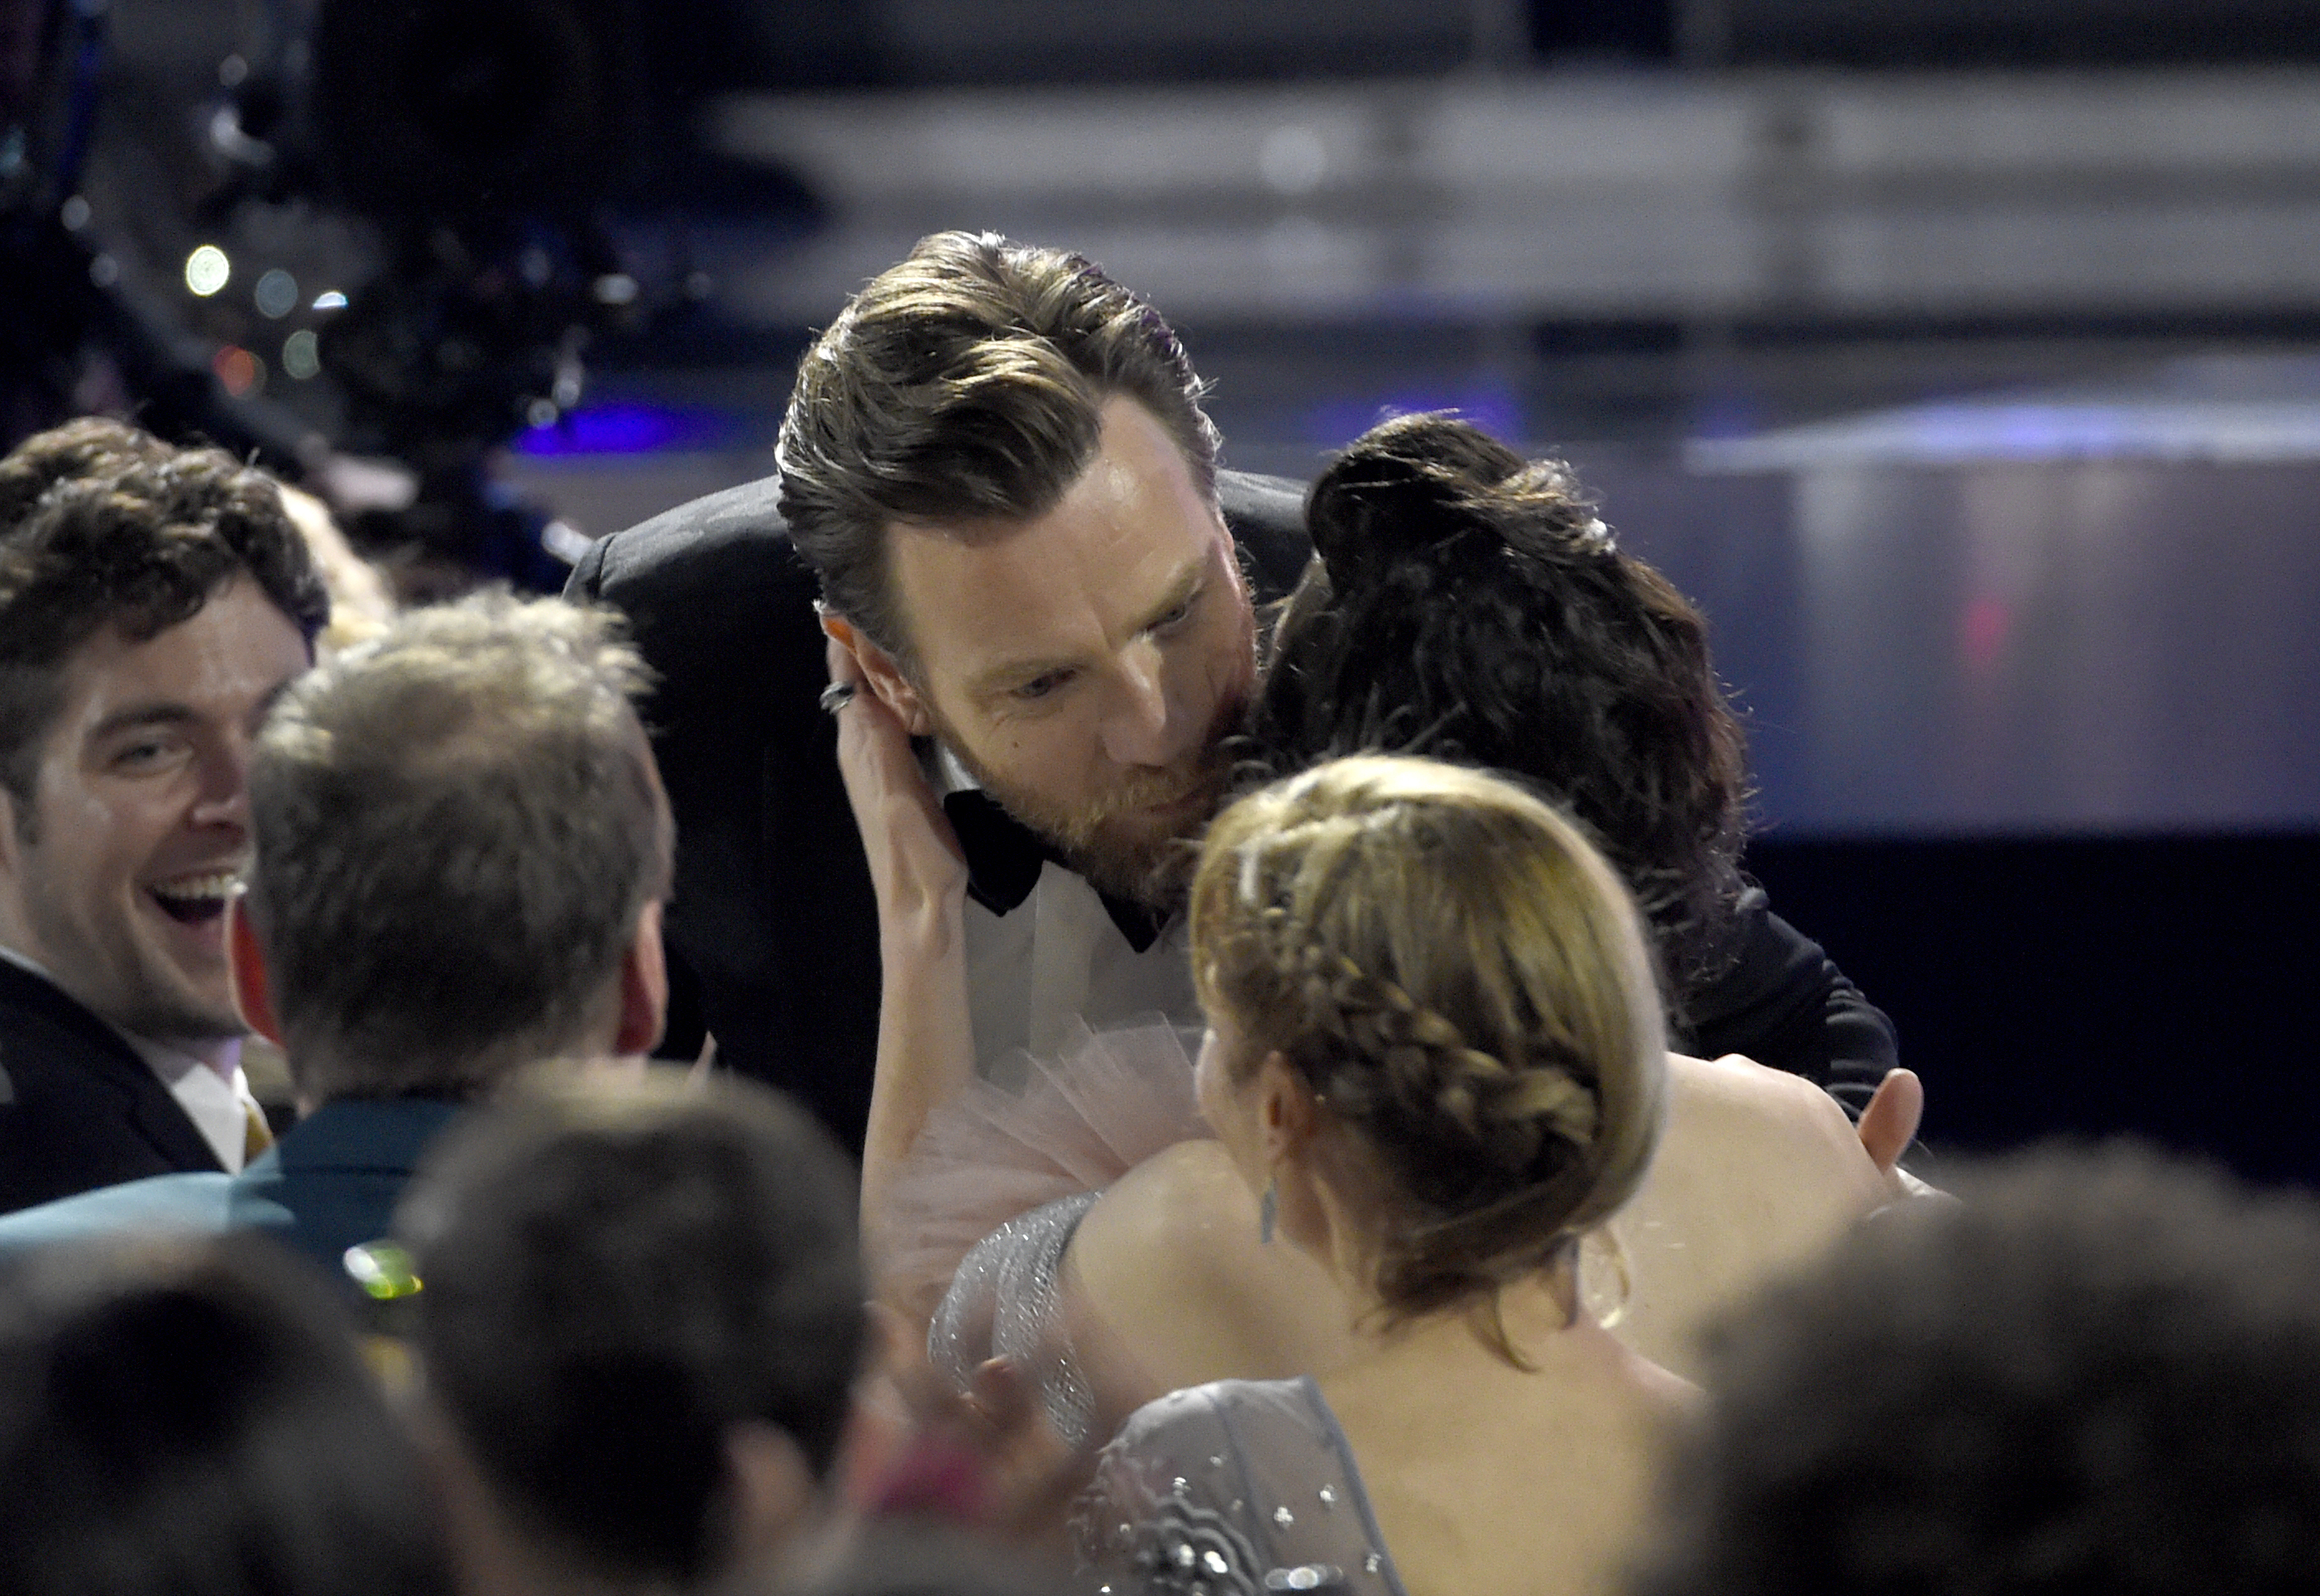 Ewan McGregor kisses Mary Elizabeth Winstead at Go